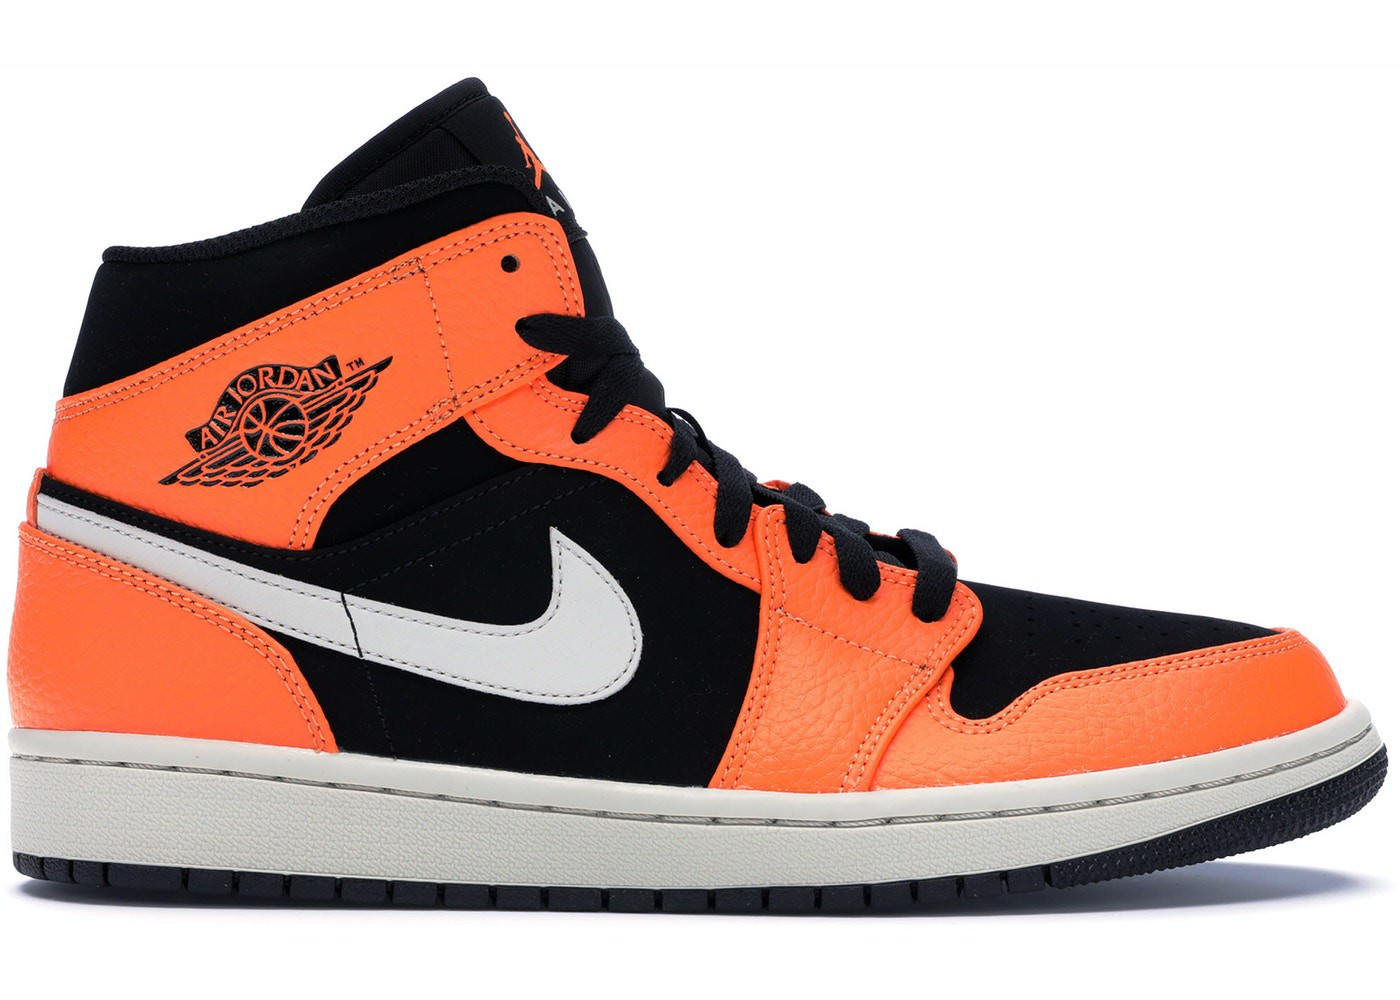 Nike Air Jordan 1 Mid Black Cone 554724-062